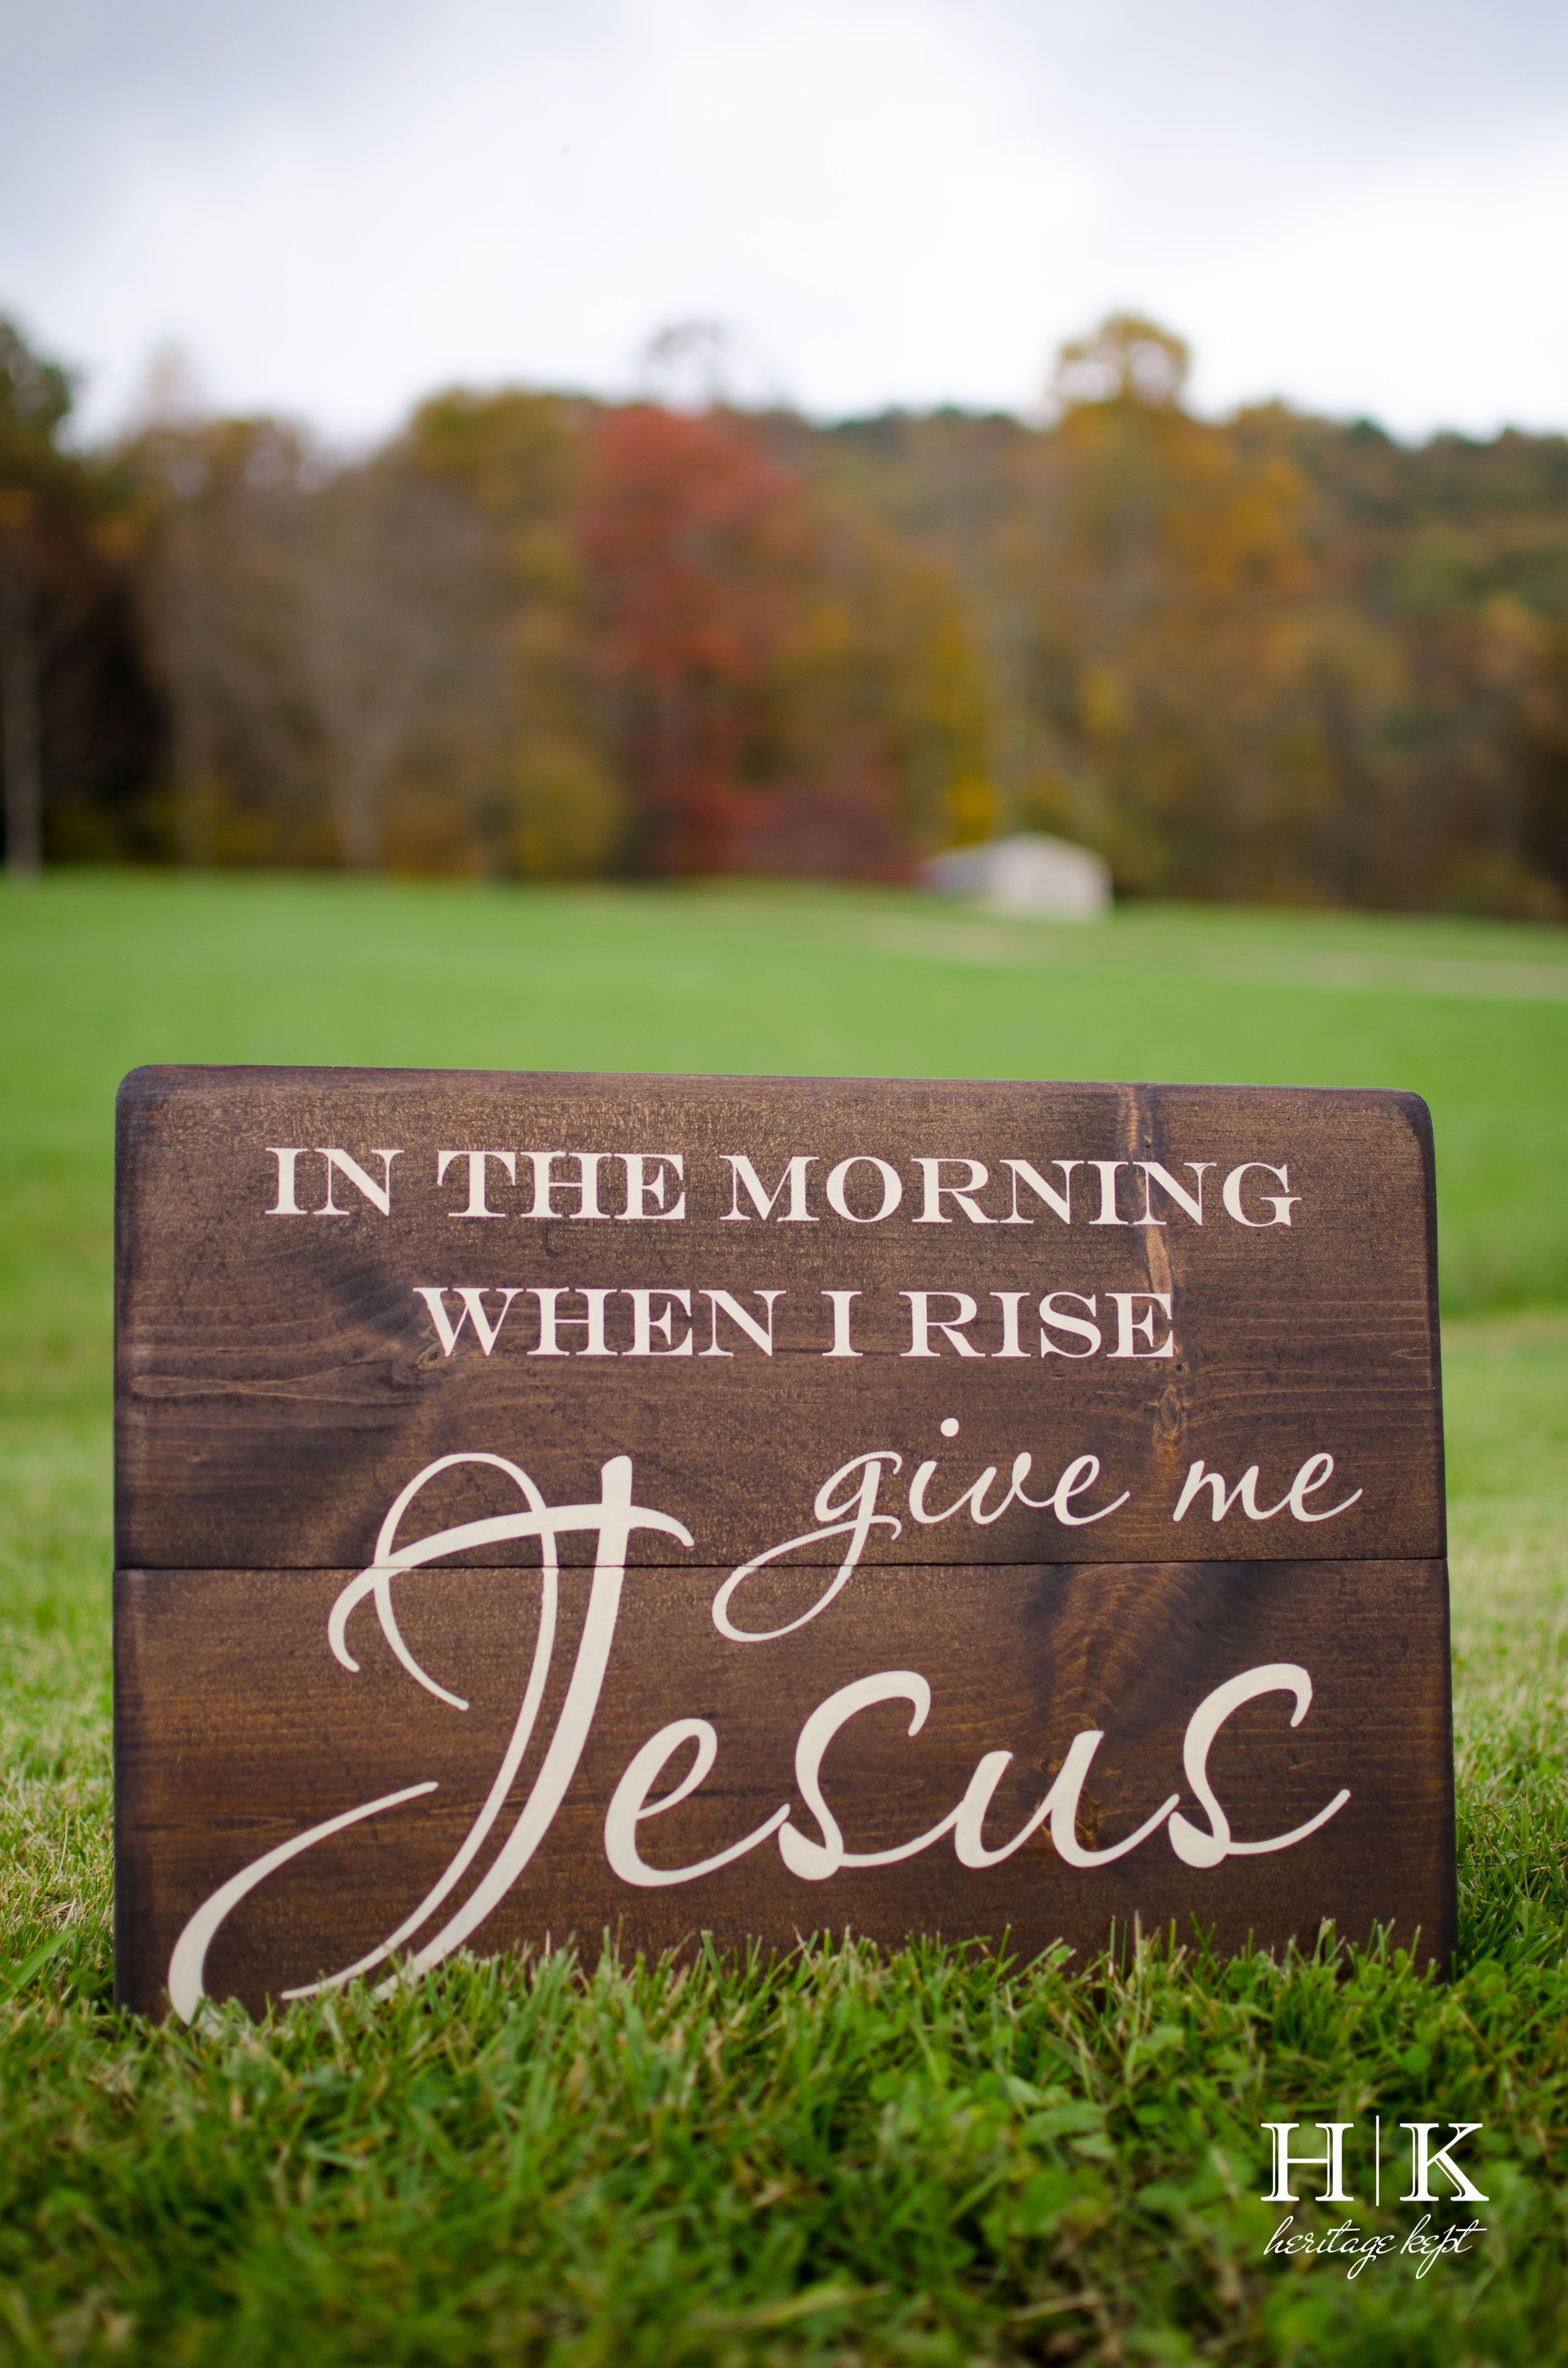 In the morning when i rise give me jesus heritagekept